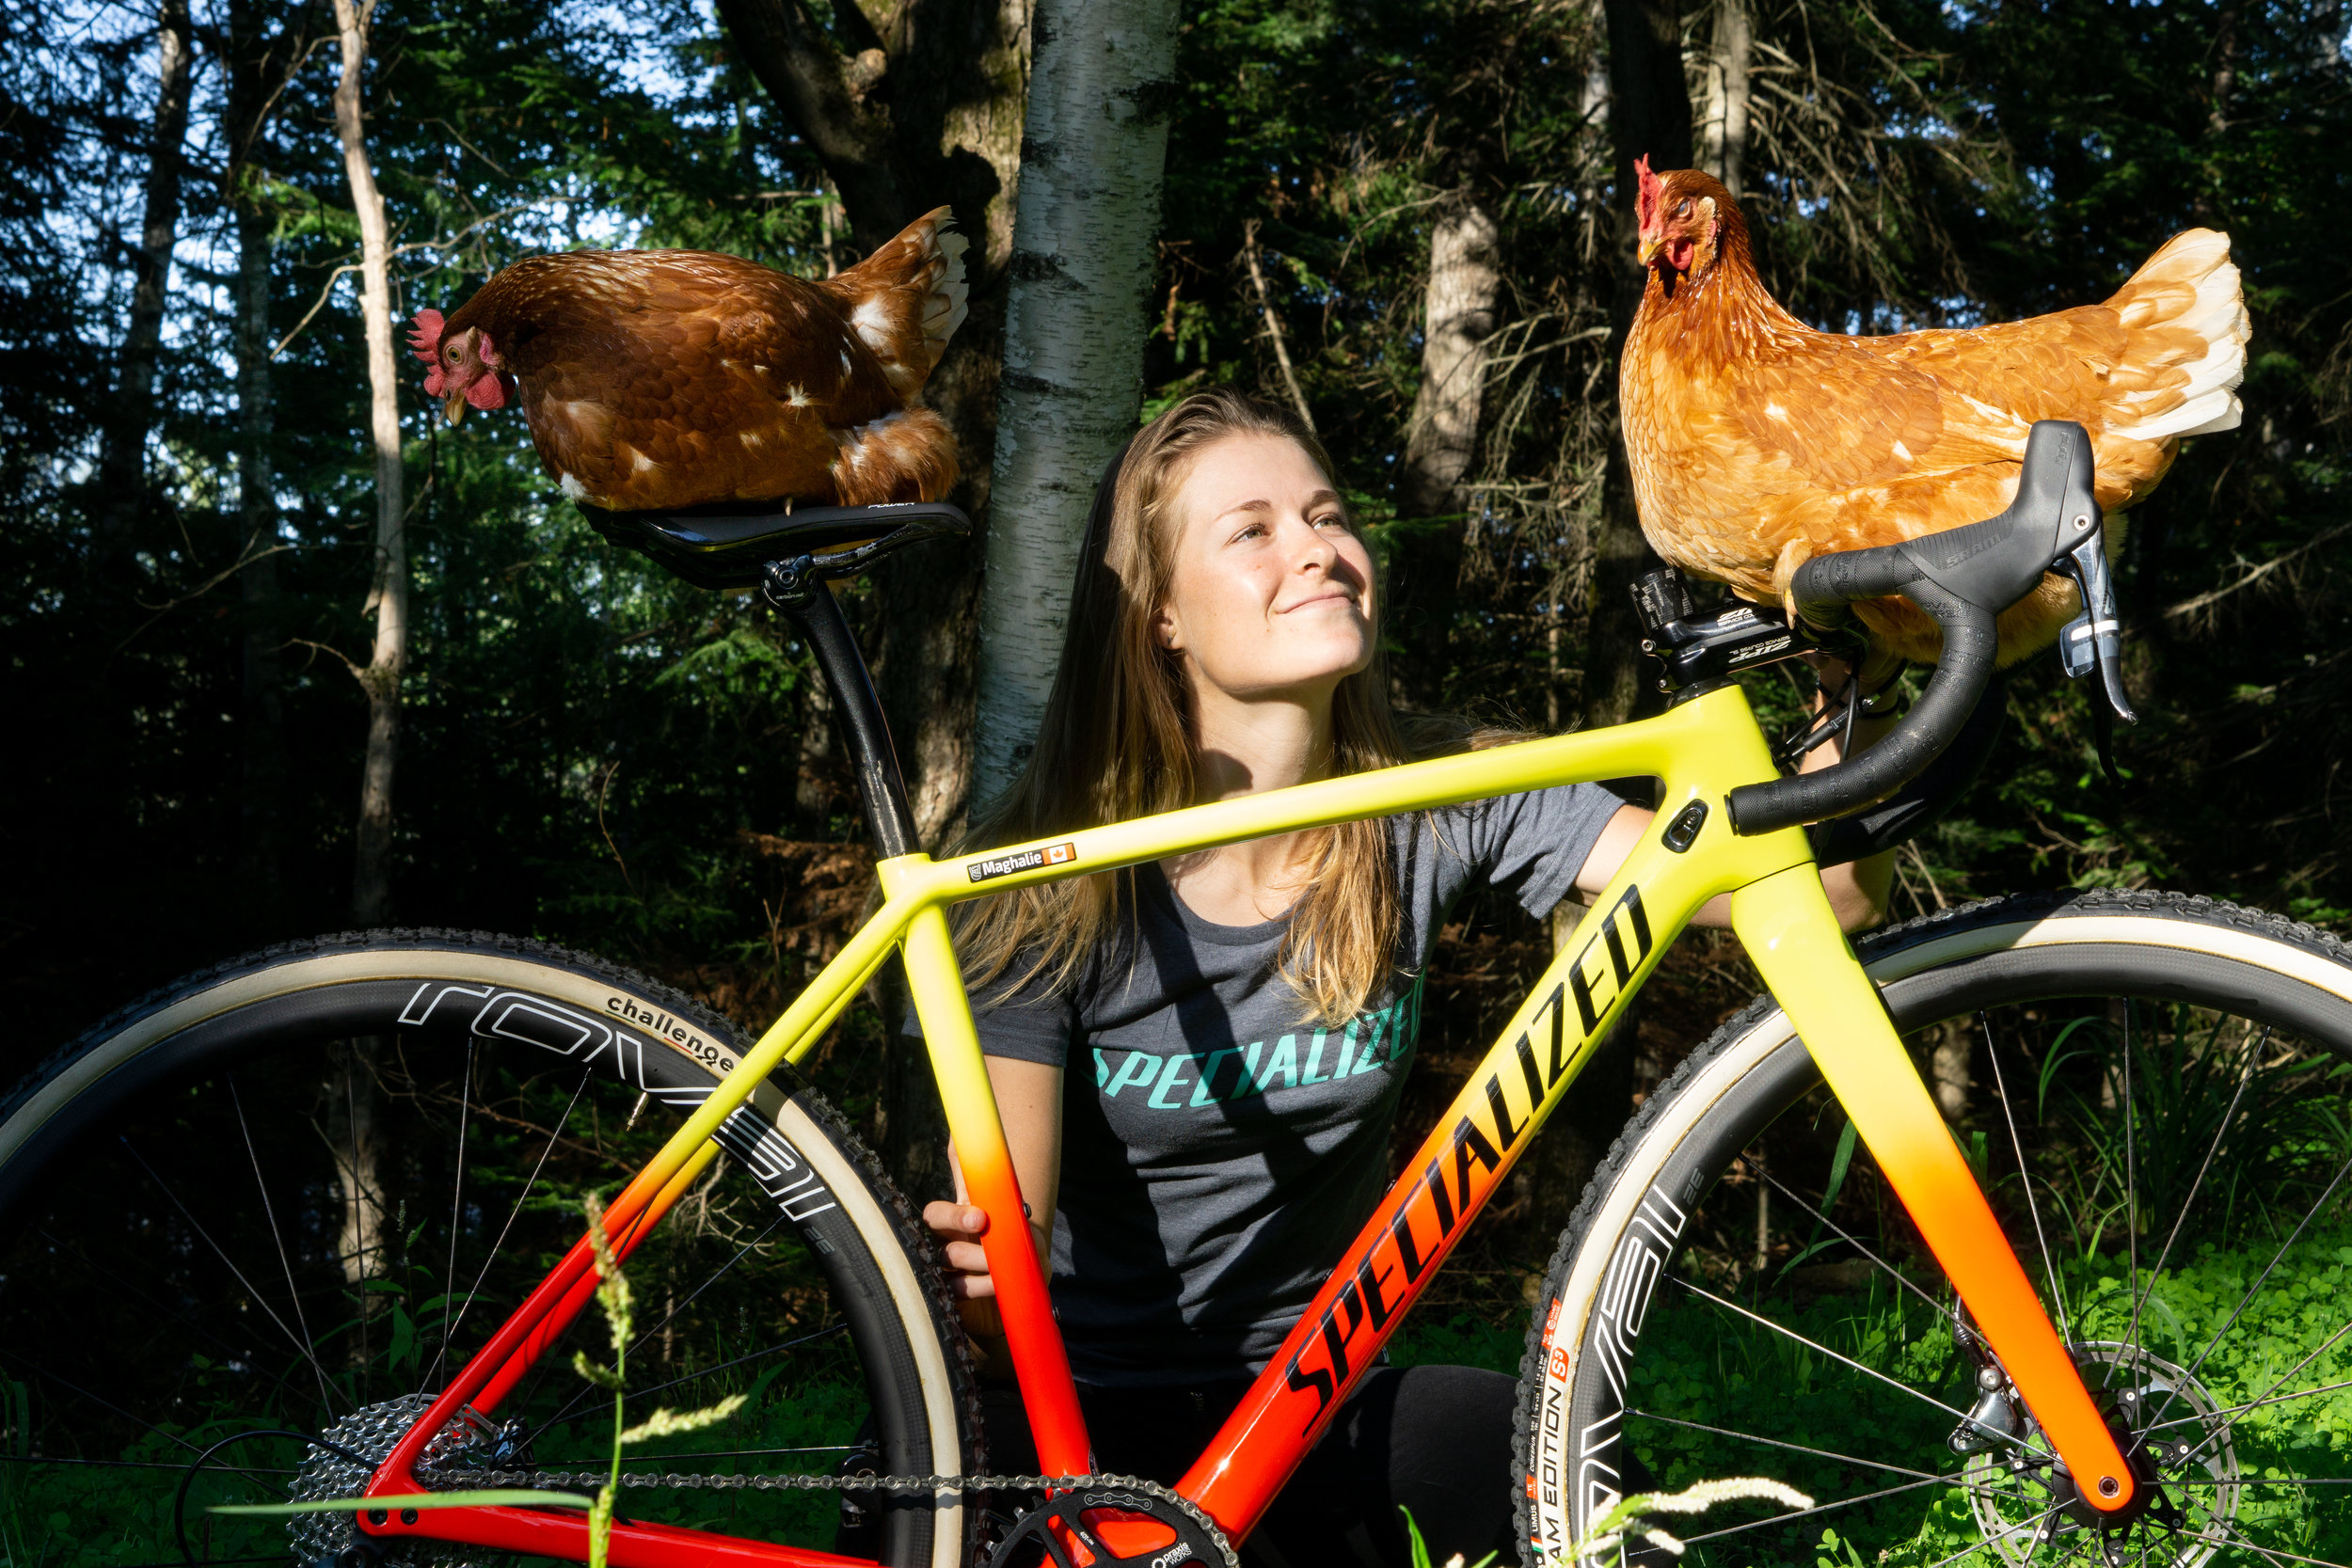 The chickens seem to love the bike just as much as I do!